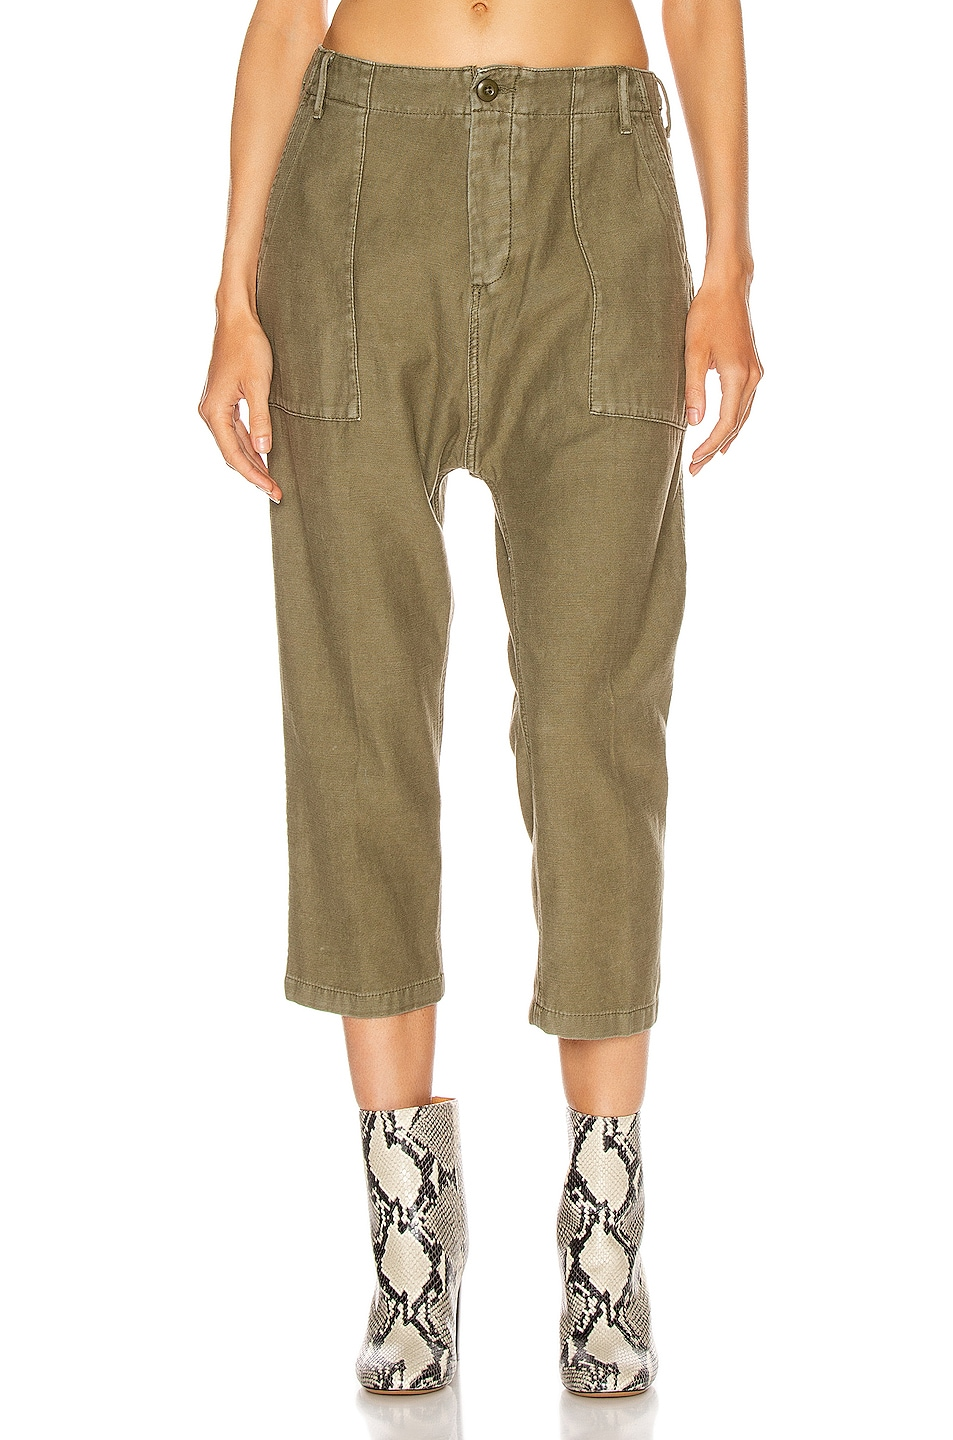 Image 1 of R13 Utility Drop Crotch Pant in Fatigue Olive